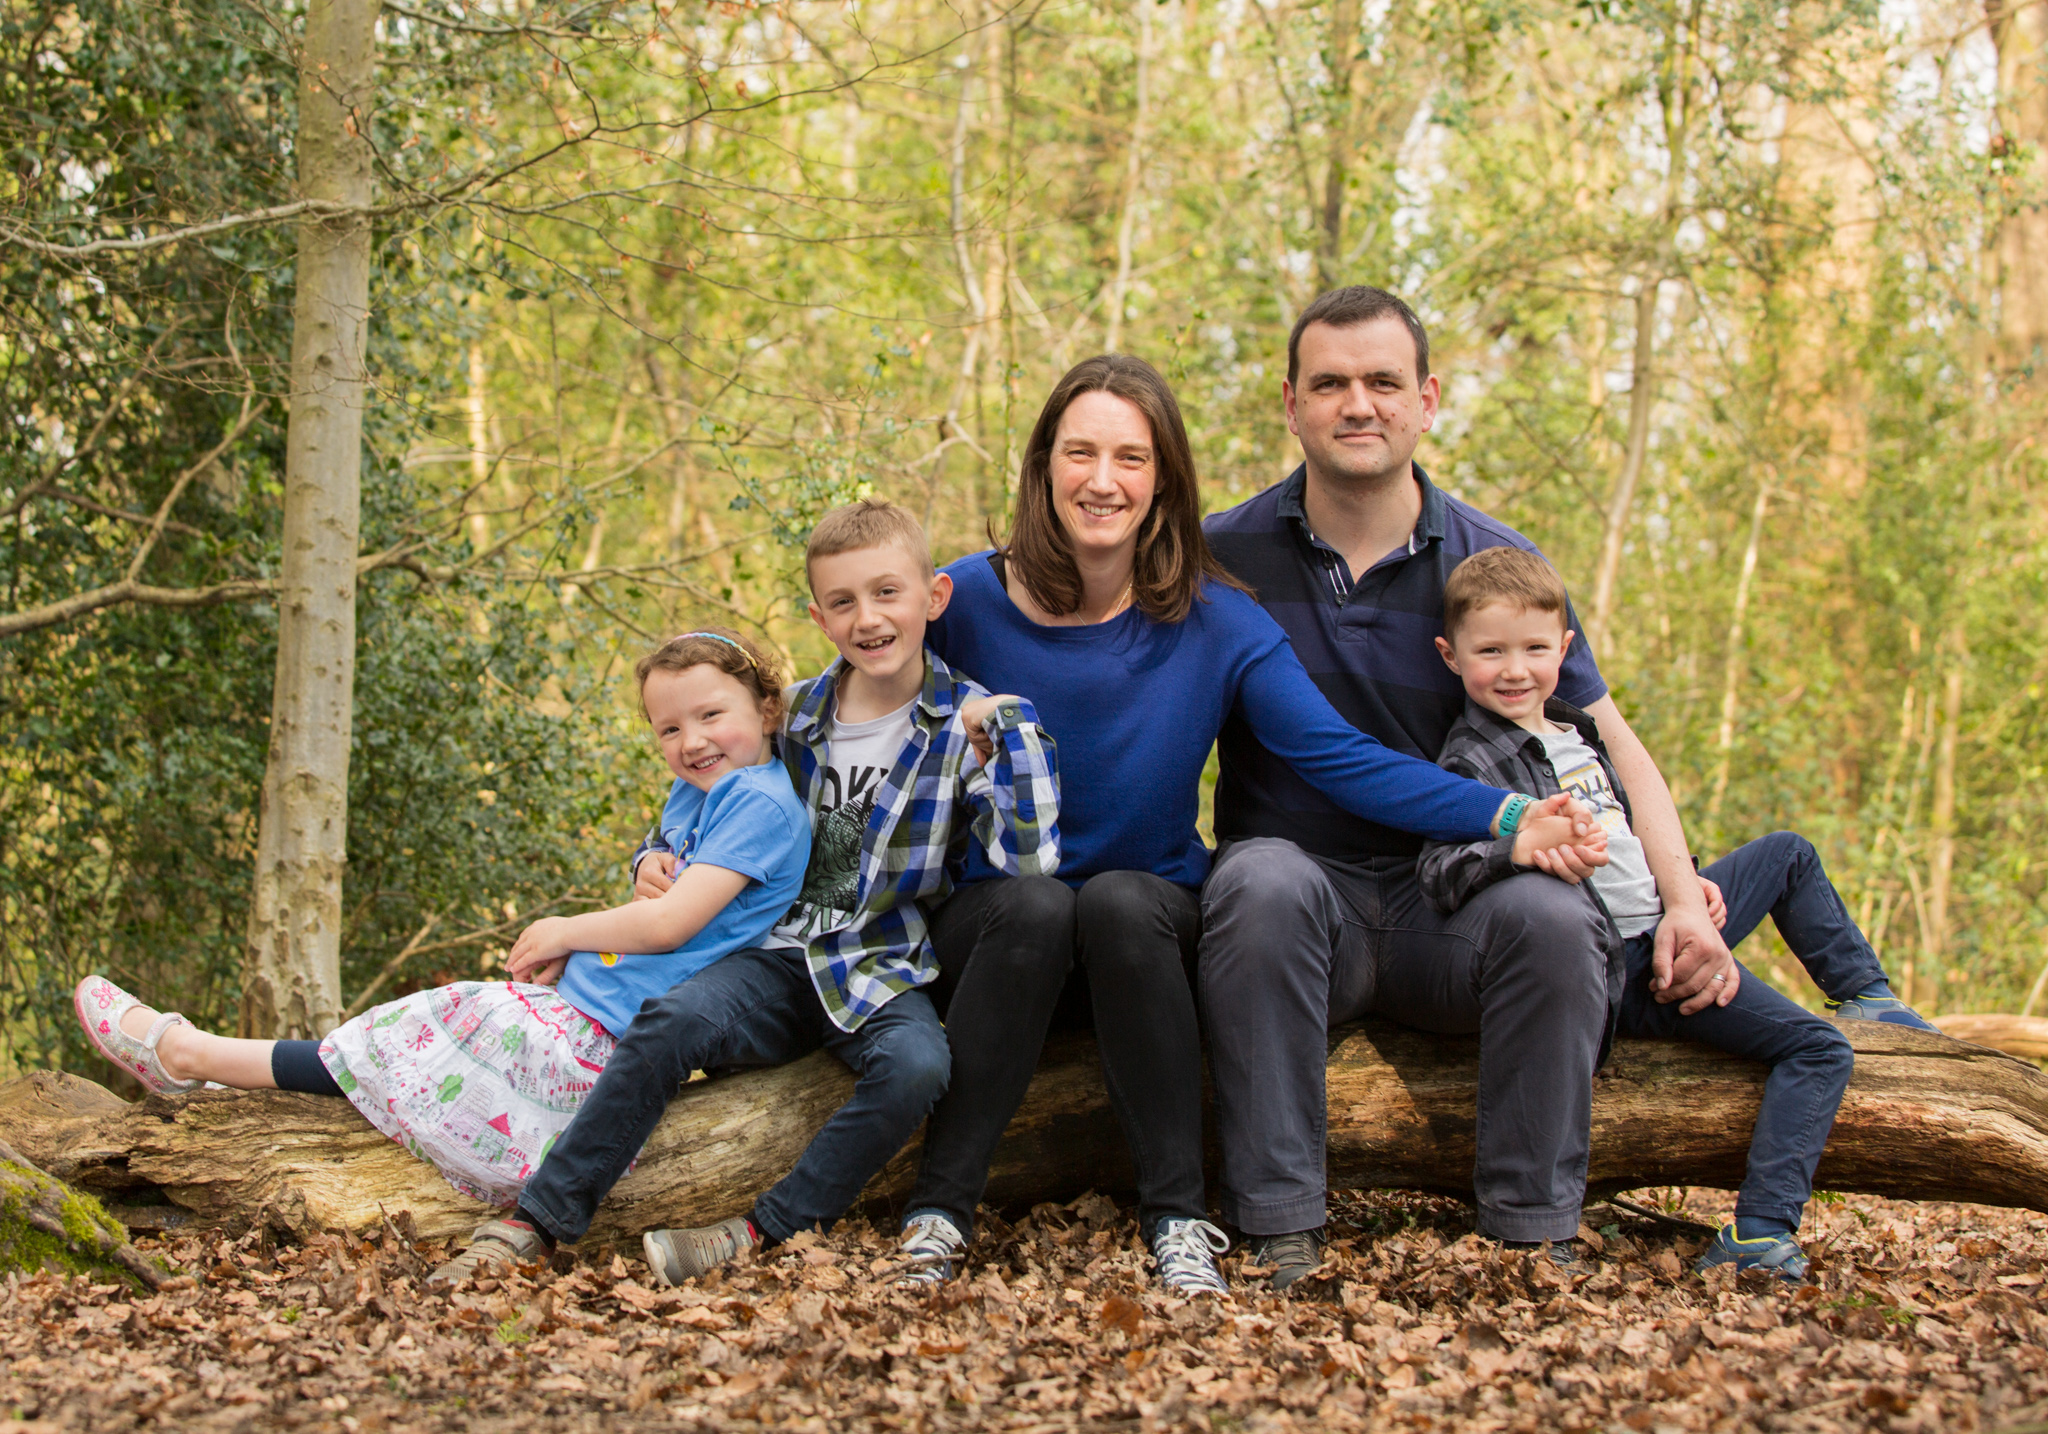 Family of 5 Portrait on Box Hill